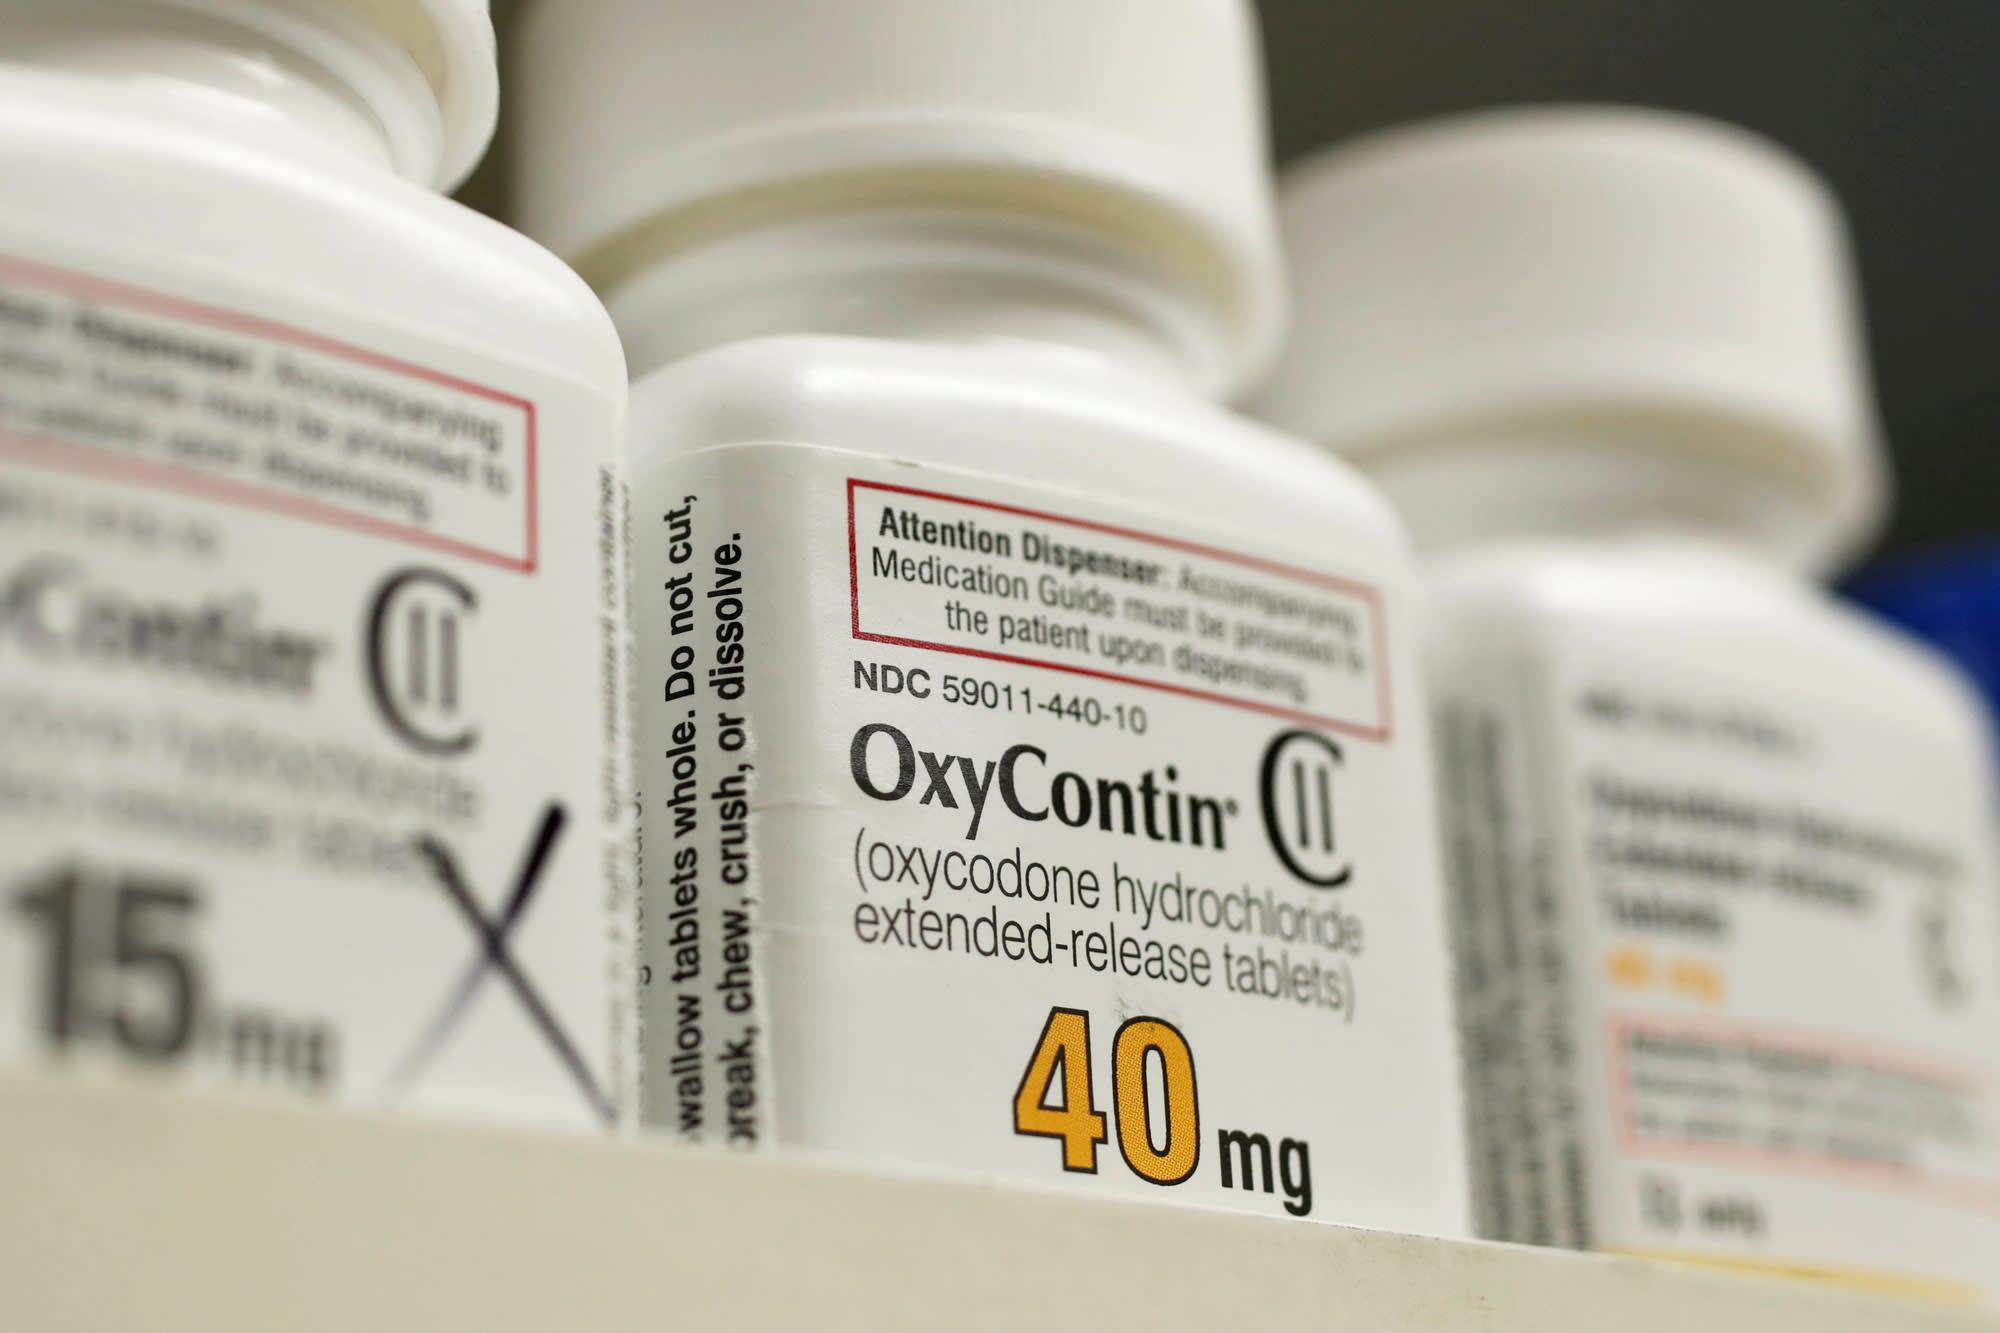 Nearly every US state is now suing OxyContin maker Purdue Pharma